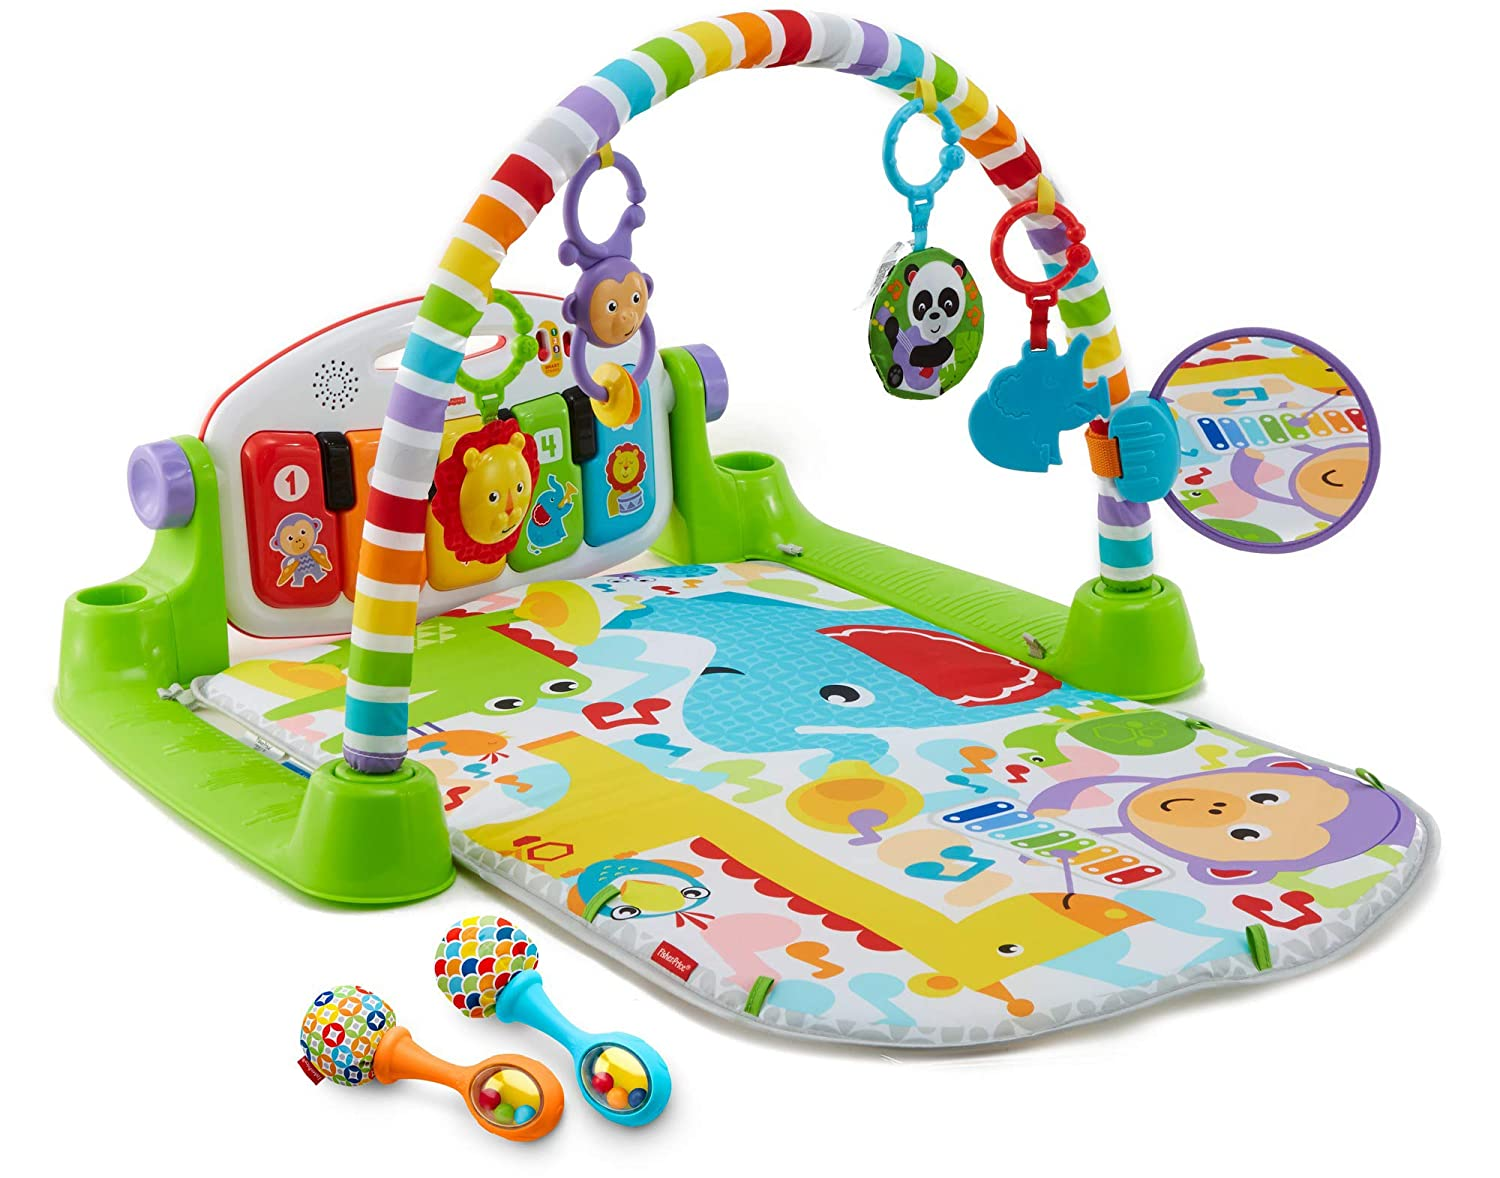 Exclusive Fisher-Price Deluxe Kick n Play Piano Gym /& Maracas Bundle